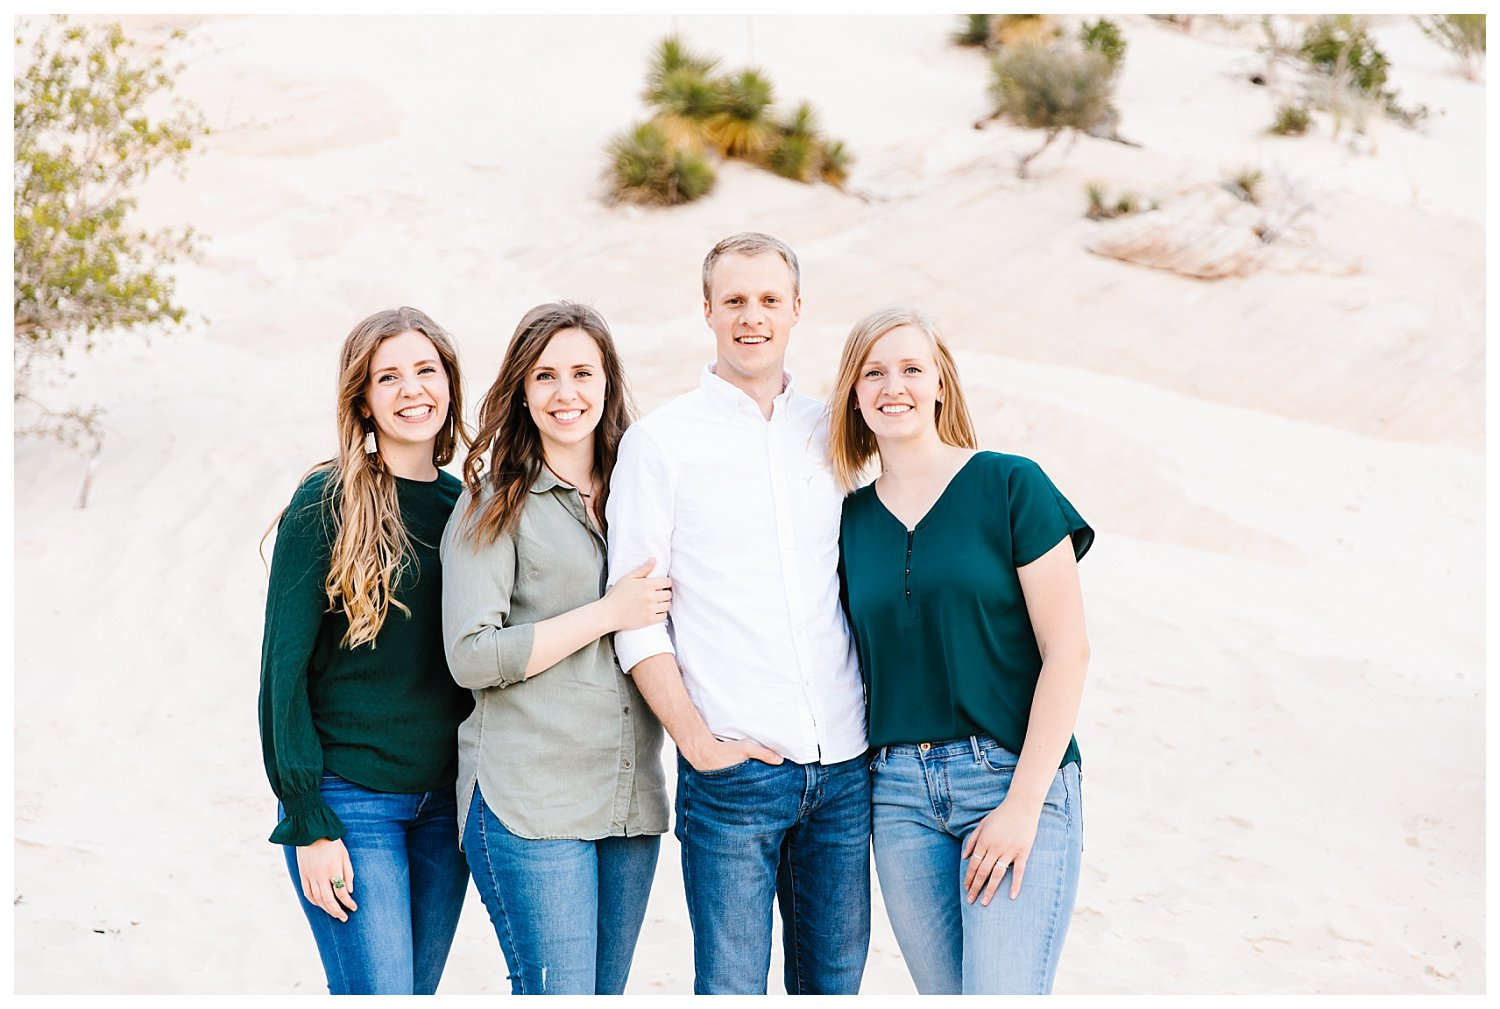 Family Session in Snow Canyon Utah | Rachel Lindsey Photography | Utah Family Photographer 5